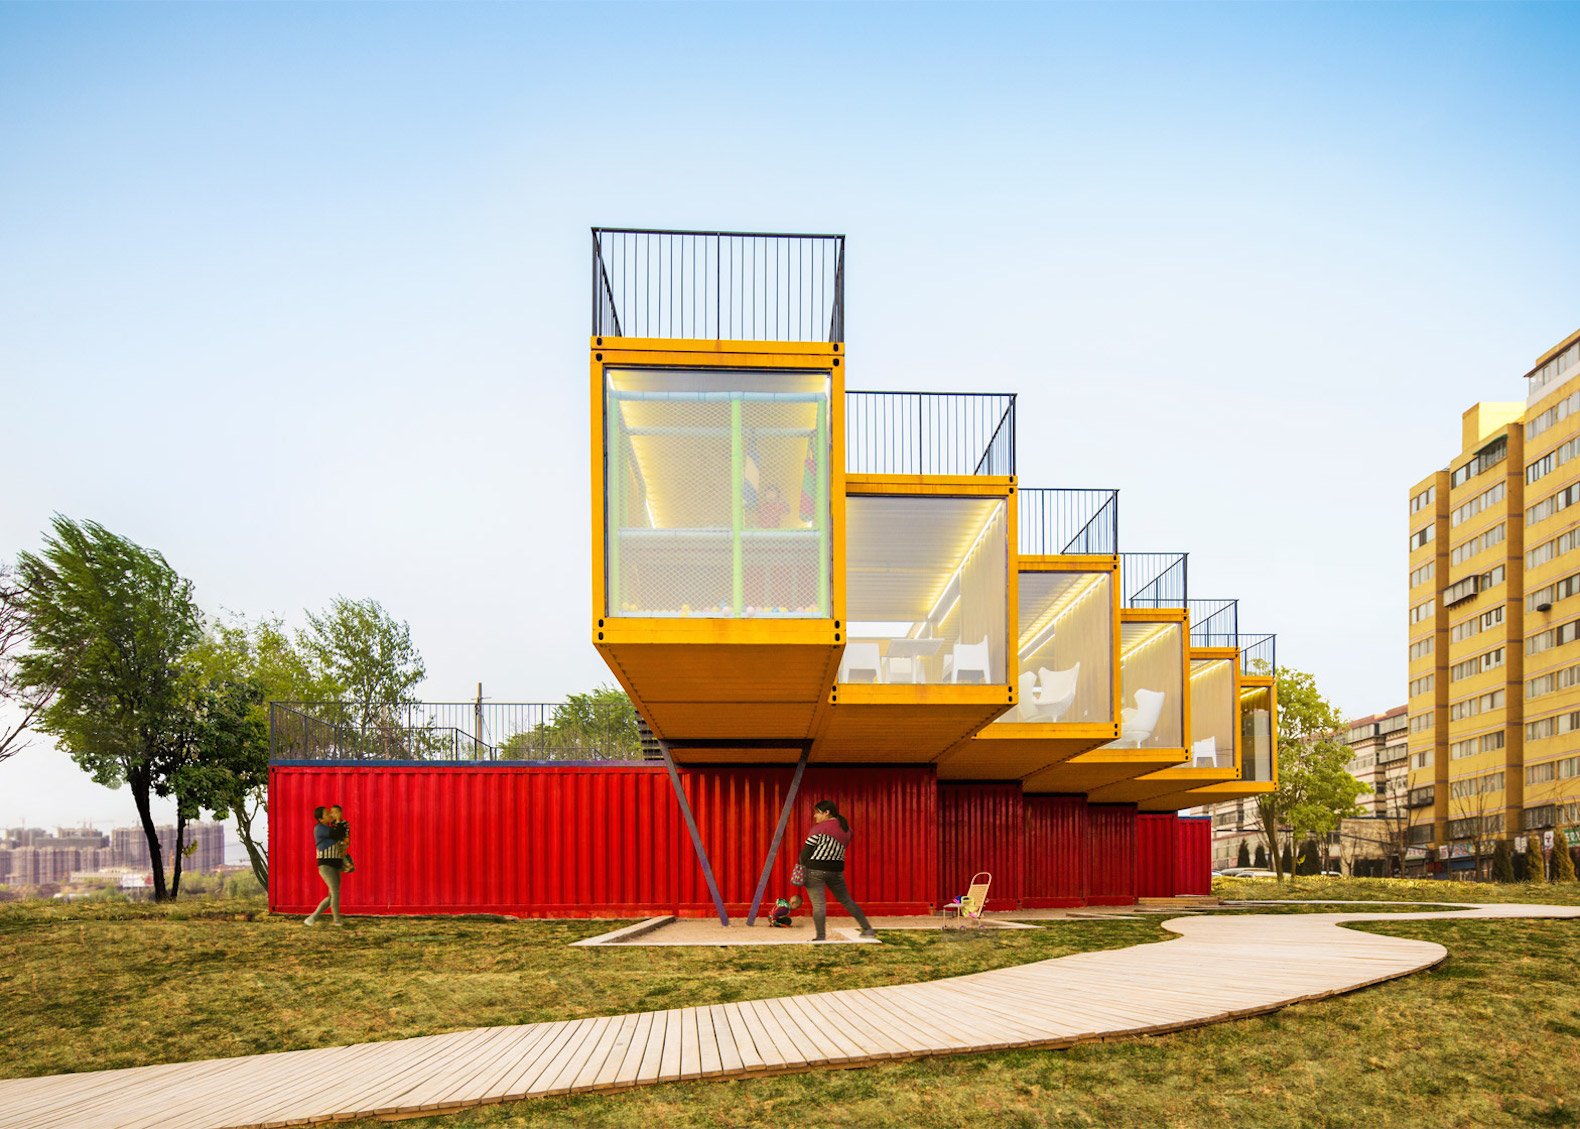 Shipping container architecture research - Shipping Containers Are Transformed Into A Colorful Office And Showroom In China